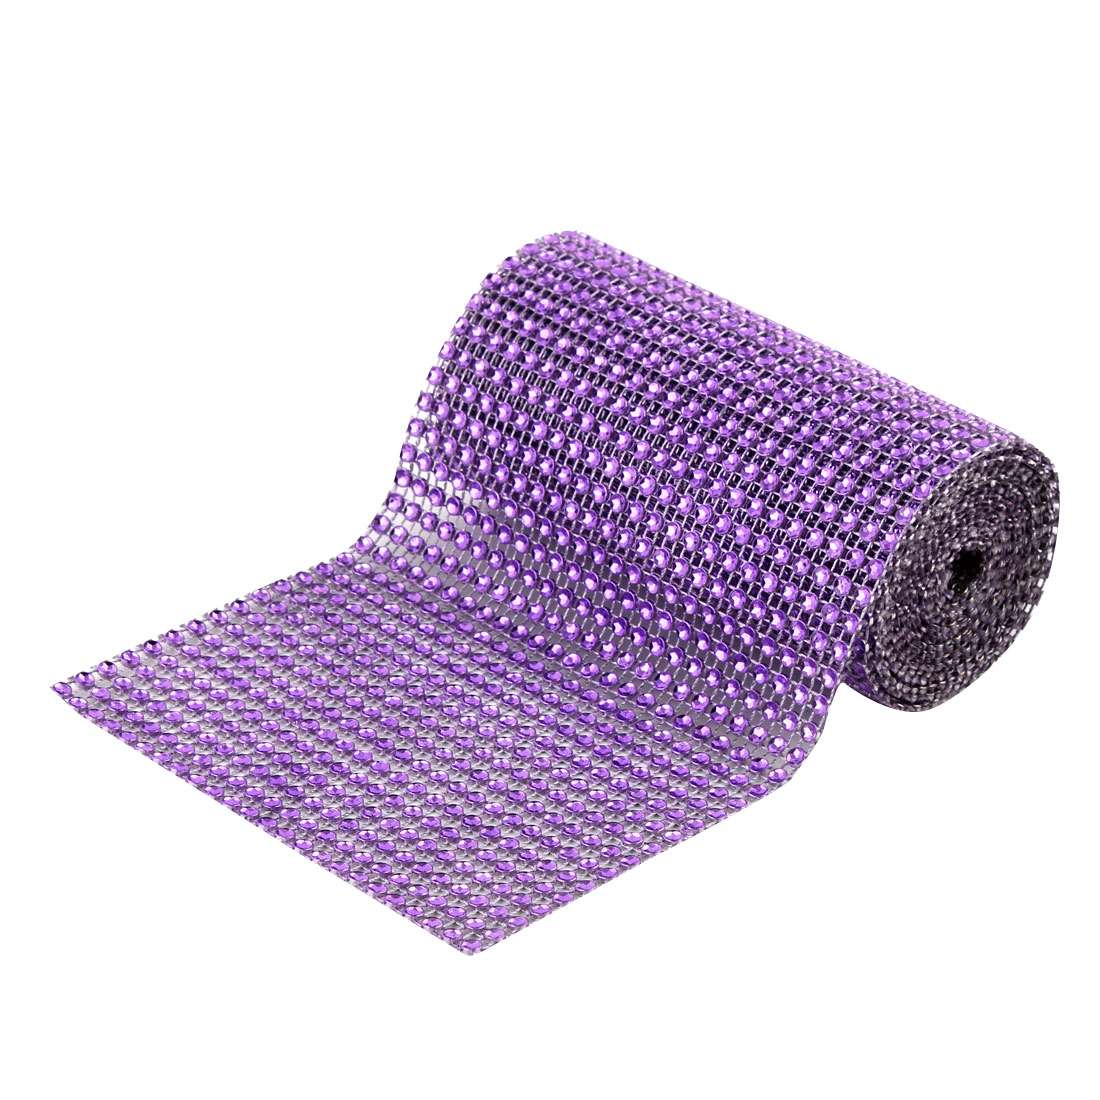 Wedding Party Plastic Cake Decoration Mesh Diamond Ribbon Dark Purple 2 Yard